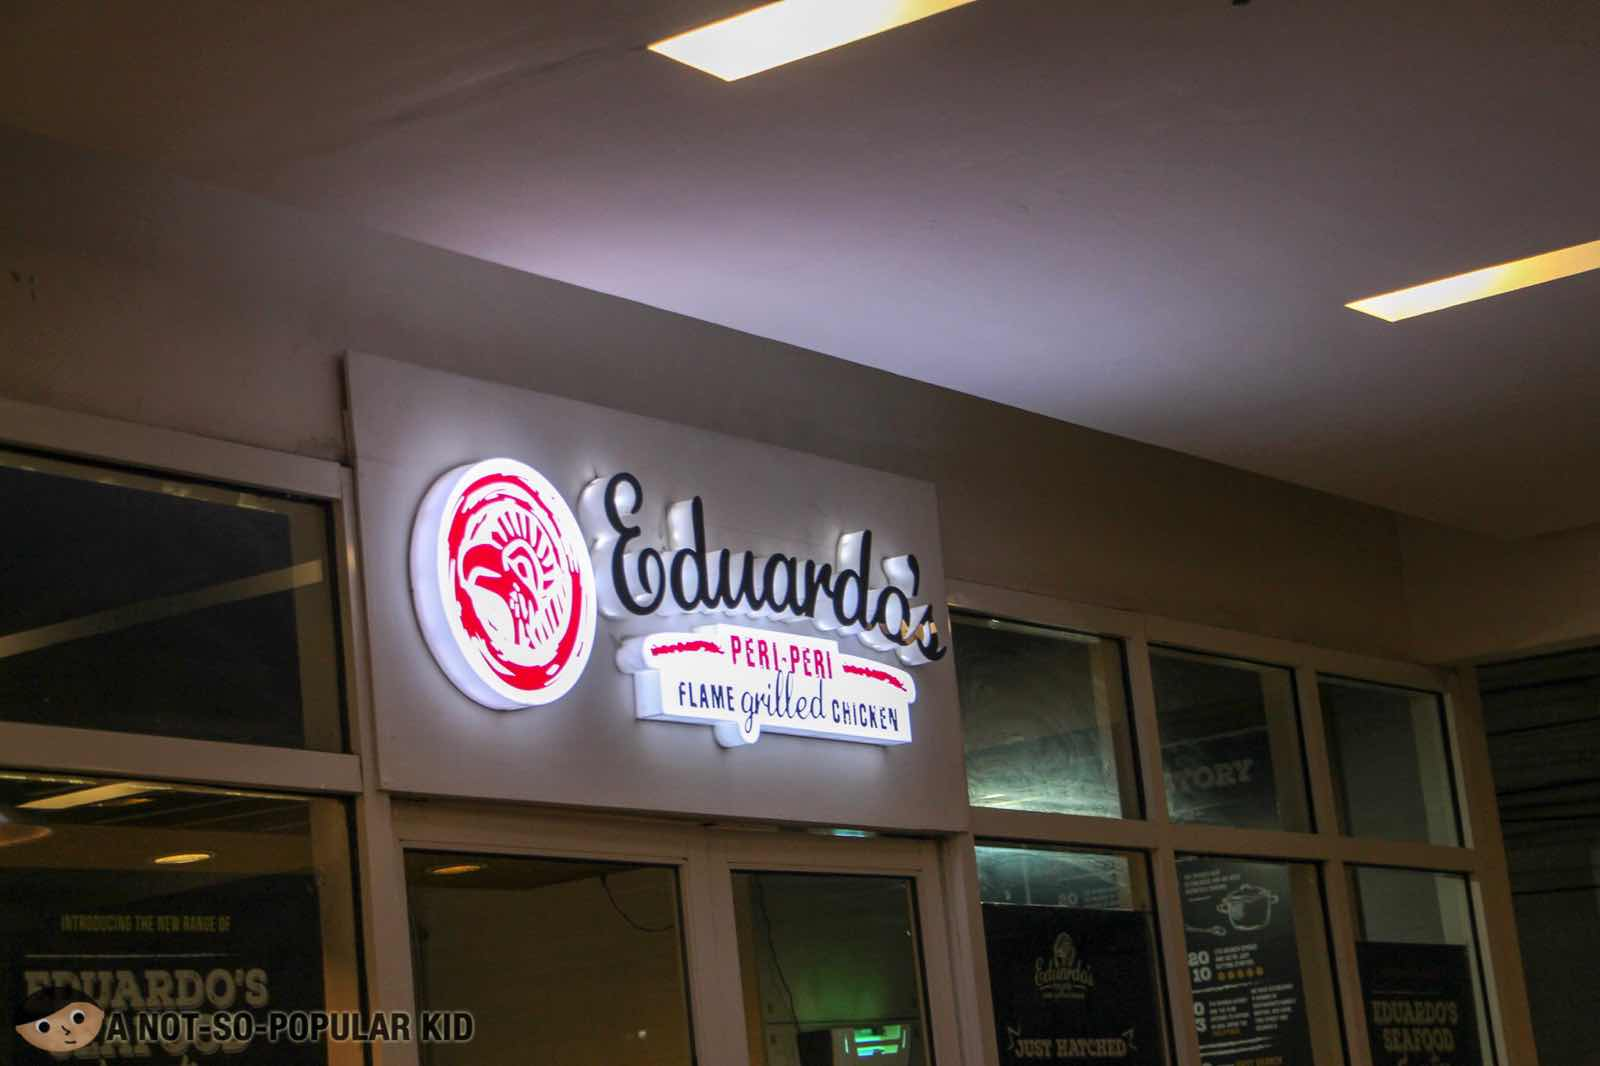 Eduardo's Peri-Peri Flame-grilled Chicken in DLSU